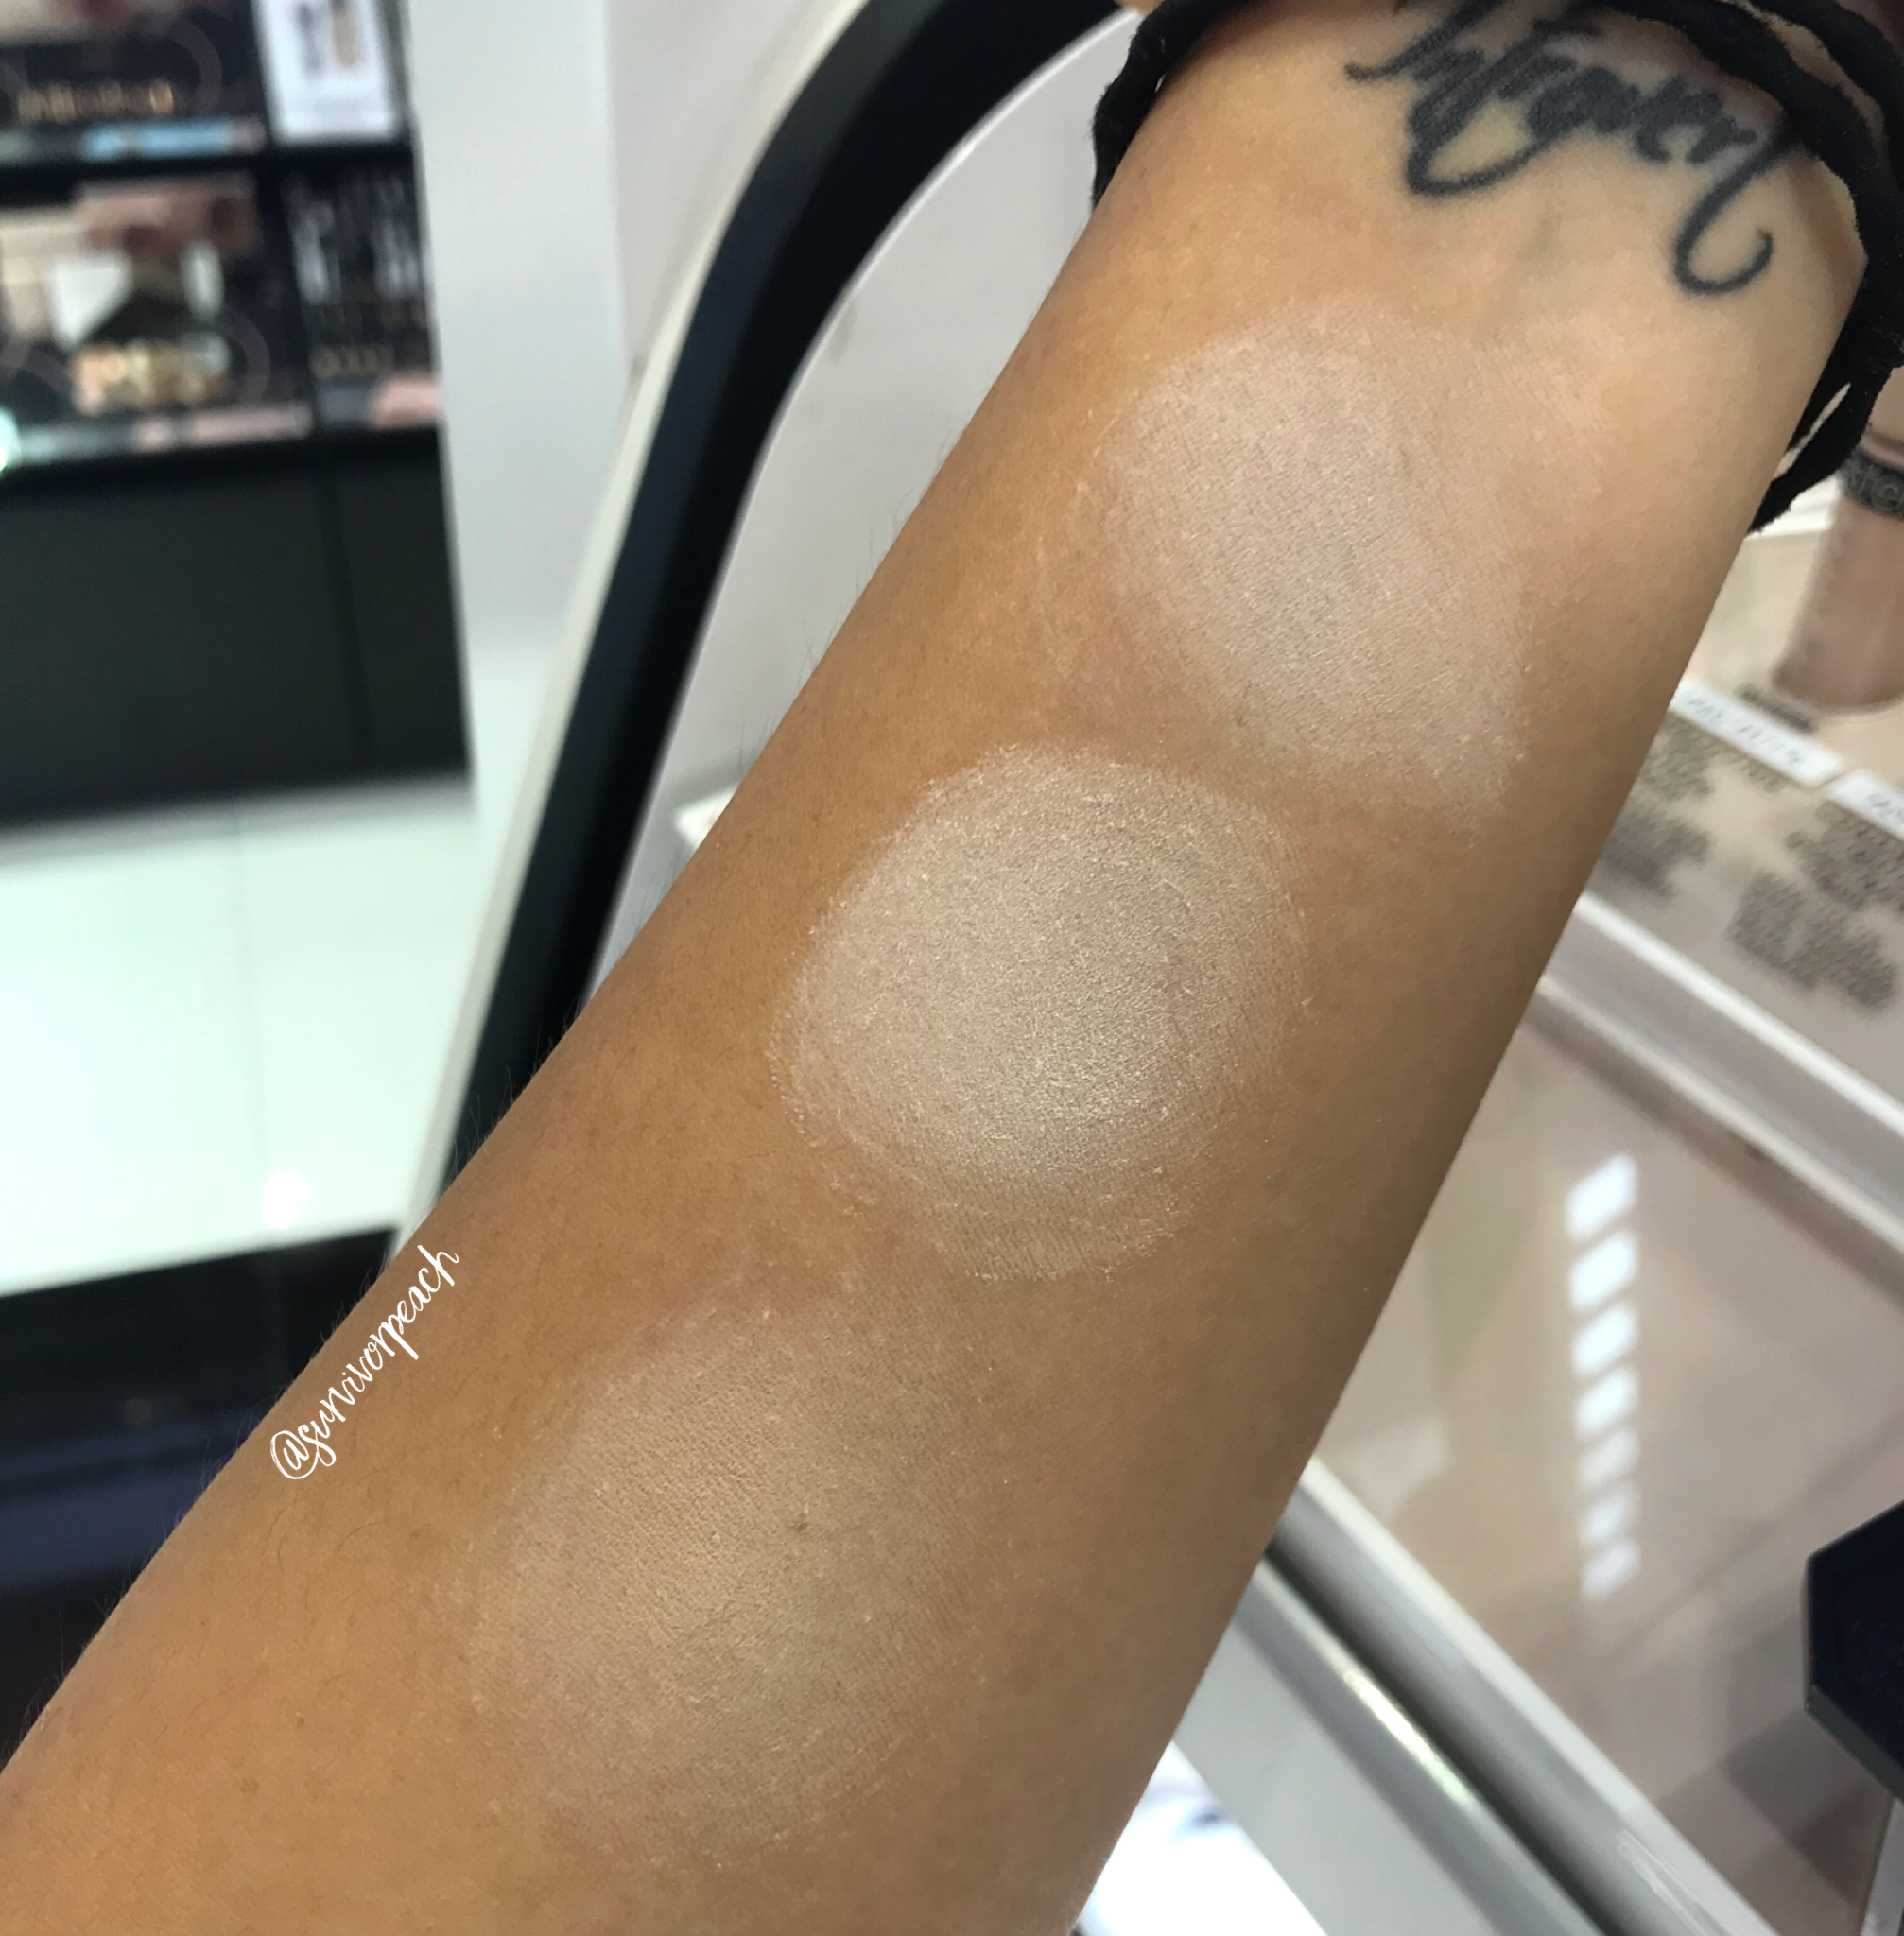 Swatches of the Fenty Beauty Pro Filt'r Instant Retouch Setting Powder - Lavender, Butter, Banana